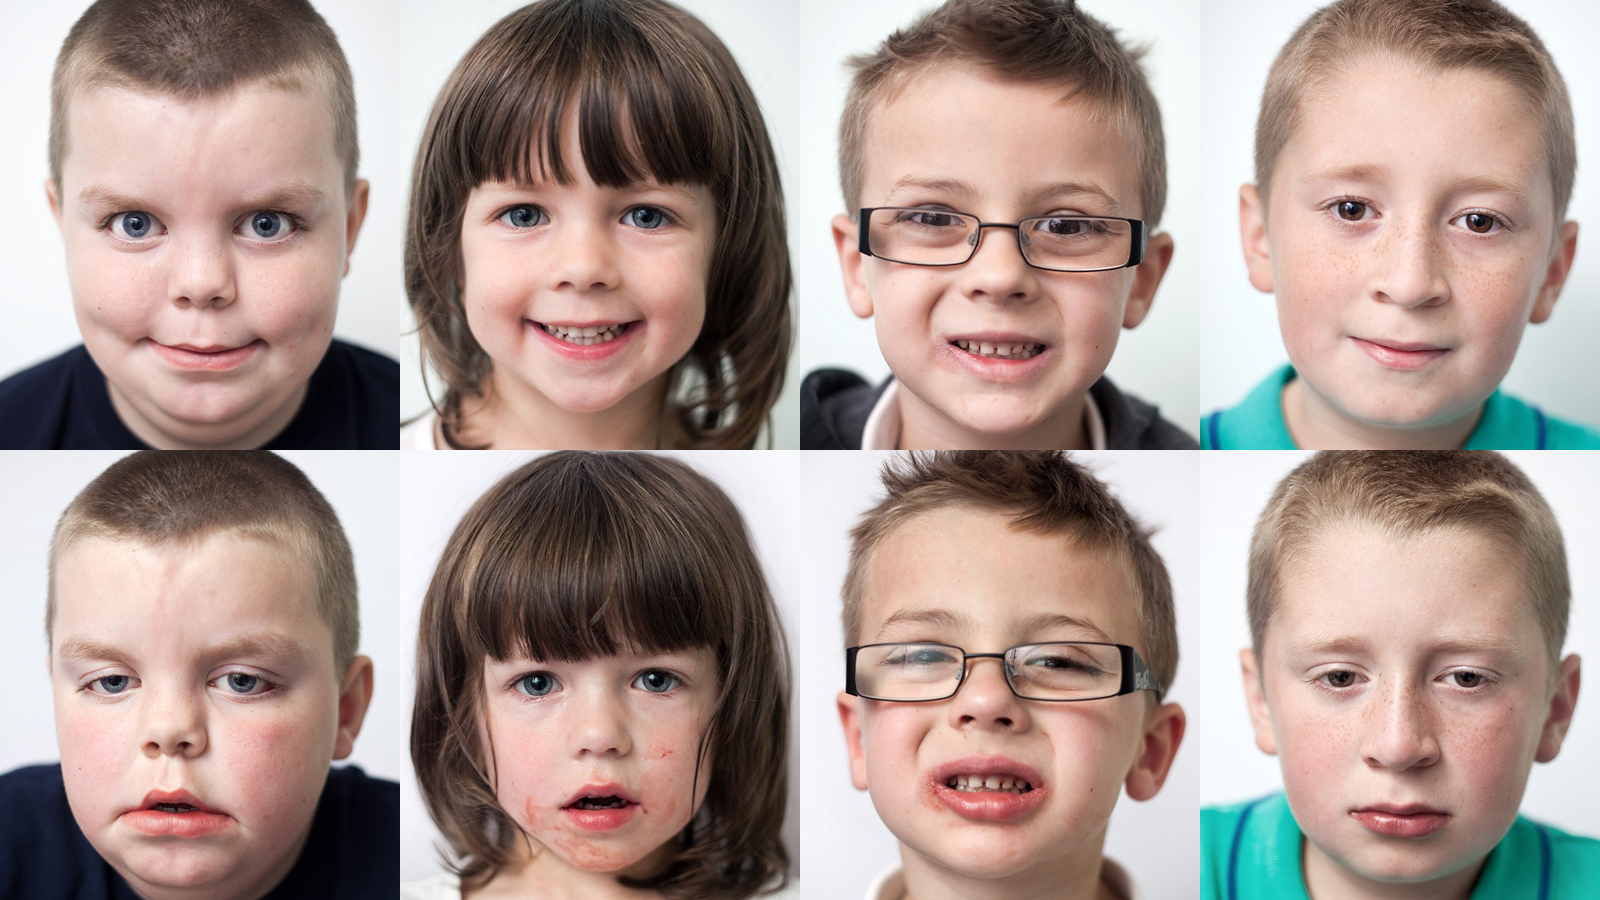 Click here to read Hilarious Before and After Kids' Portraits Show the Horrors of Oral Surgery